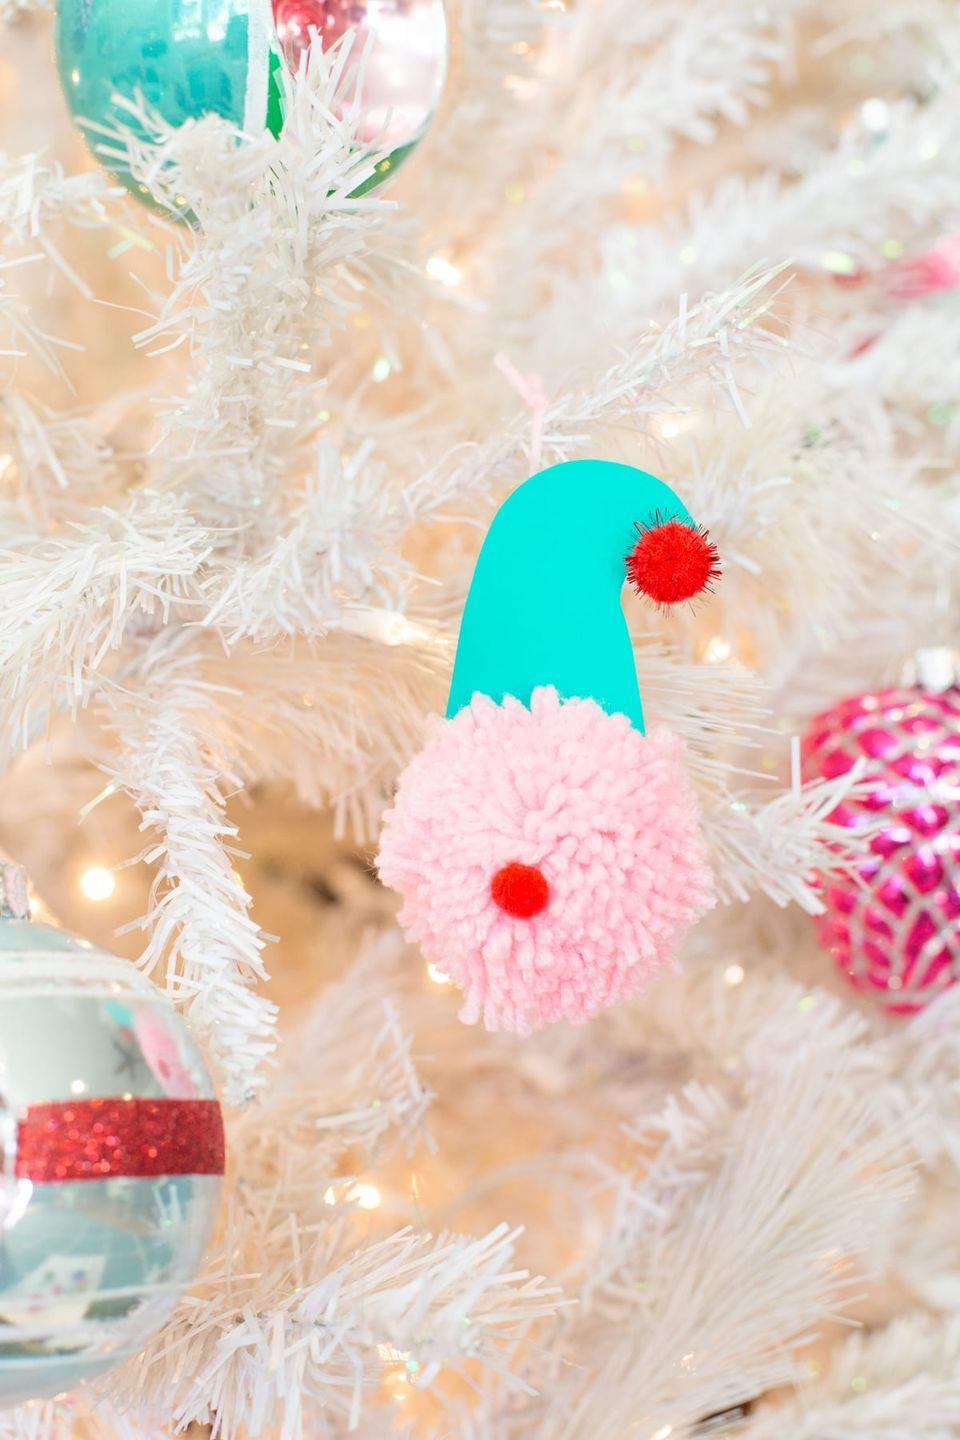 "<p>Make your own pom-pom-tastic Santas, reindeer, elves, and more with these adorable ornaments. The instructions include steps to make your own pom-poms too!</p><p><strong>Get the tutorial at <a href=""https://lovelyindeed.com/pom-pom-christmas-ornaments-family-holiday-tradition/"" rel=""nofollow noopener"" target=""_blank"" data-ylk=""slk:Lovely Indeed"" class=""link rapid-noclick-resp"">Lovely Indeed</a>.</strong></p><p><strong><a class=""link rapid-noclick-resp"" href=""https://www.amazon.com/Pompom-Different-Pom-pom-Weaver-Knitting/dp/B01N4BKCC5/ref=sr_1_4?tag=syn-yahoo-20&ascsubtag=%5Bartid%7C10050.g.1070%5Bsrc%7Cyahoo-us"" rel=""nofollow noopener"" target=""_blank"" data-ylk=""slk:SHOP POM-POM MAKERS"">SHOP POM-POM MAKERS</a><br></strong></p>"